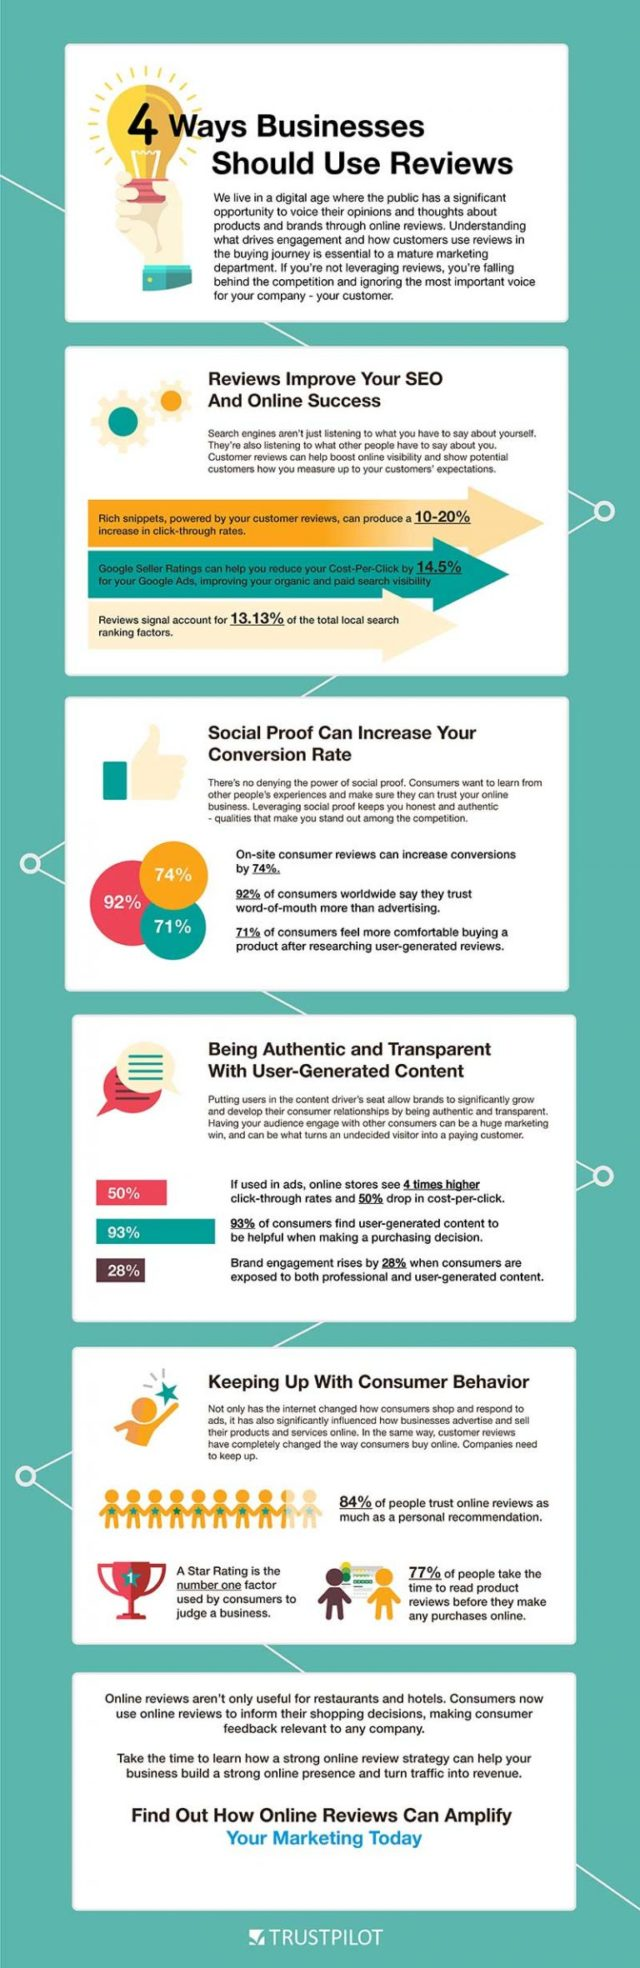 Four ways businesses should use reviews infographic by TRUSTPILOT